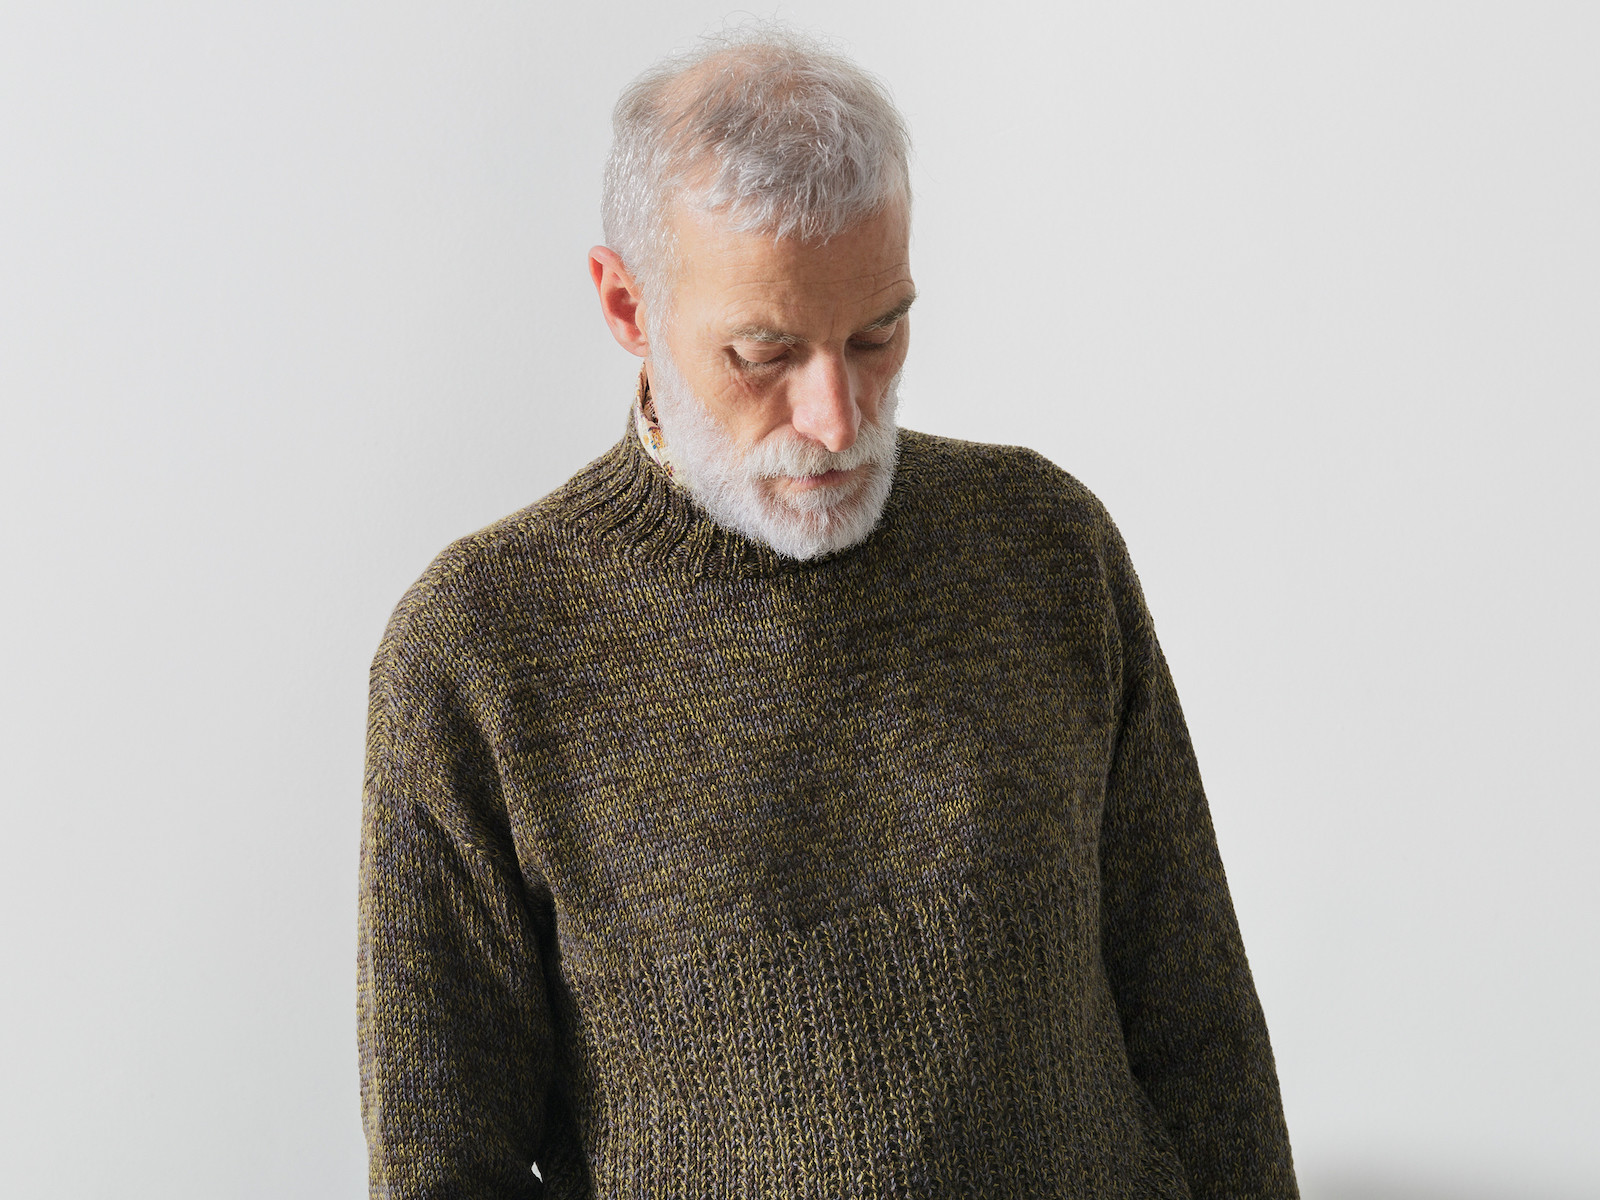 Perkins ribbed sweater Image